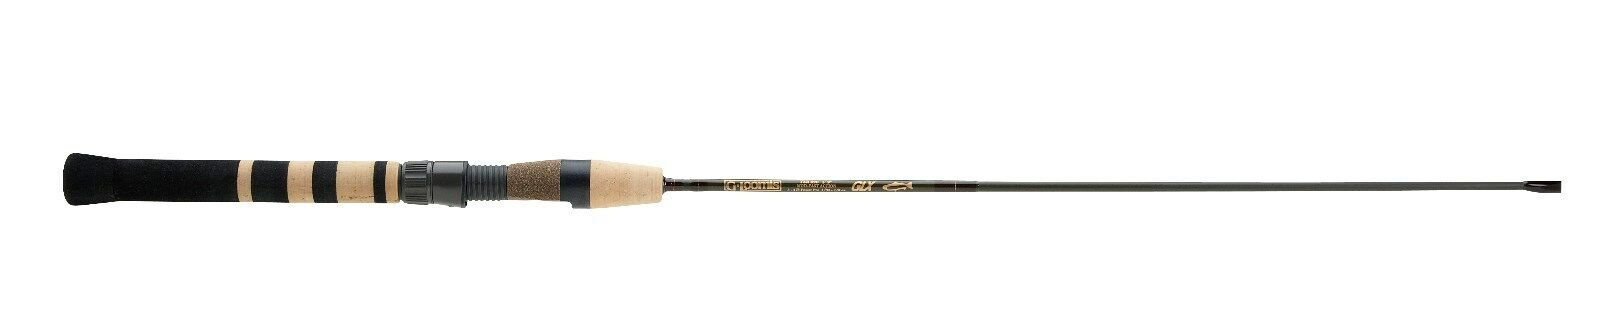 G.Loomis GLX Trout Series Spinning Rod 6'7  UL F 1pc.